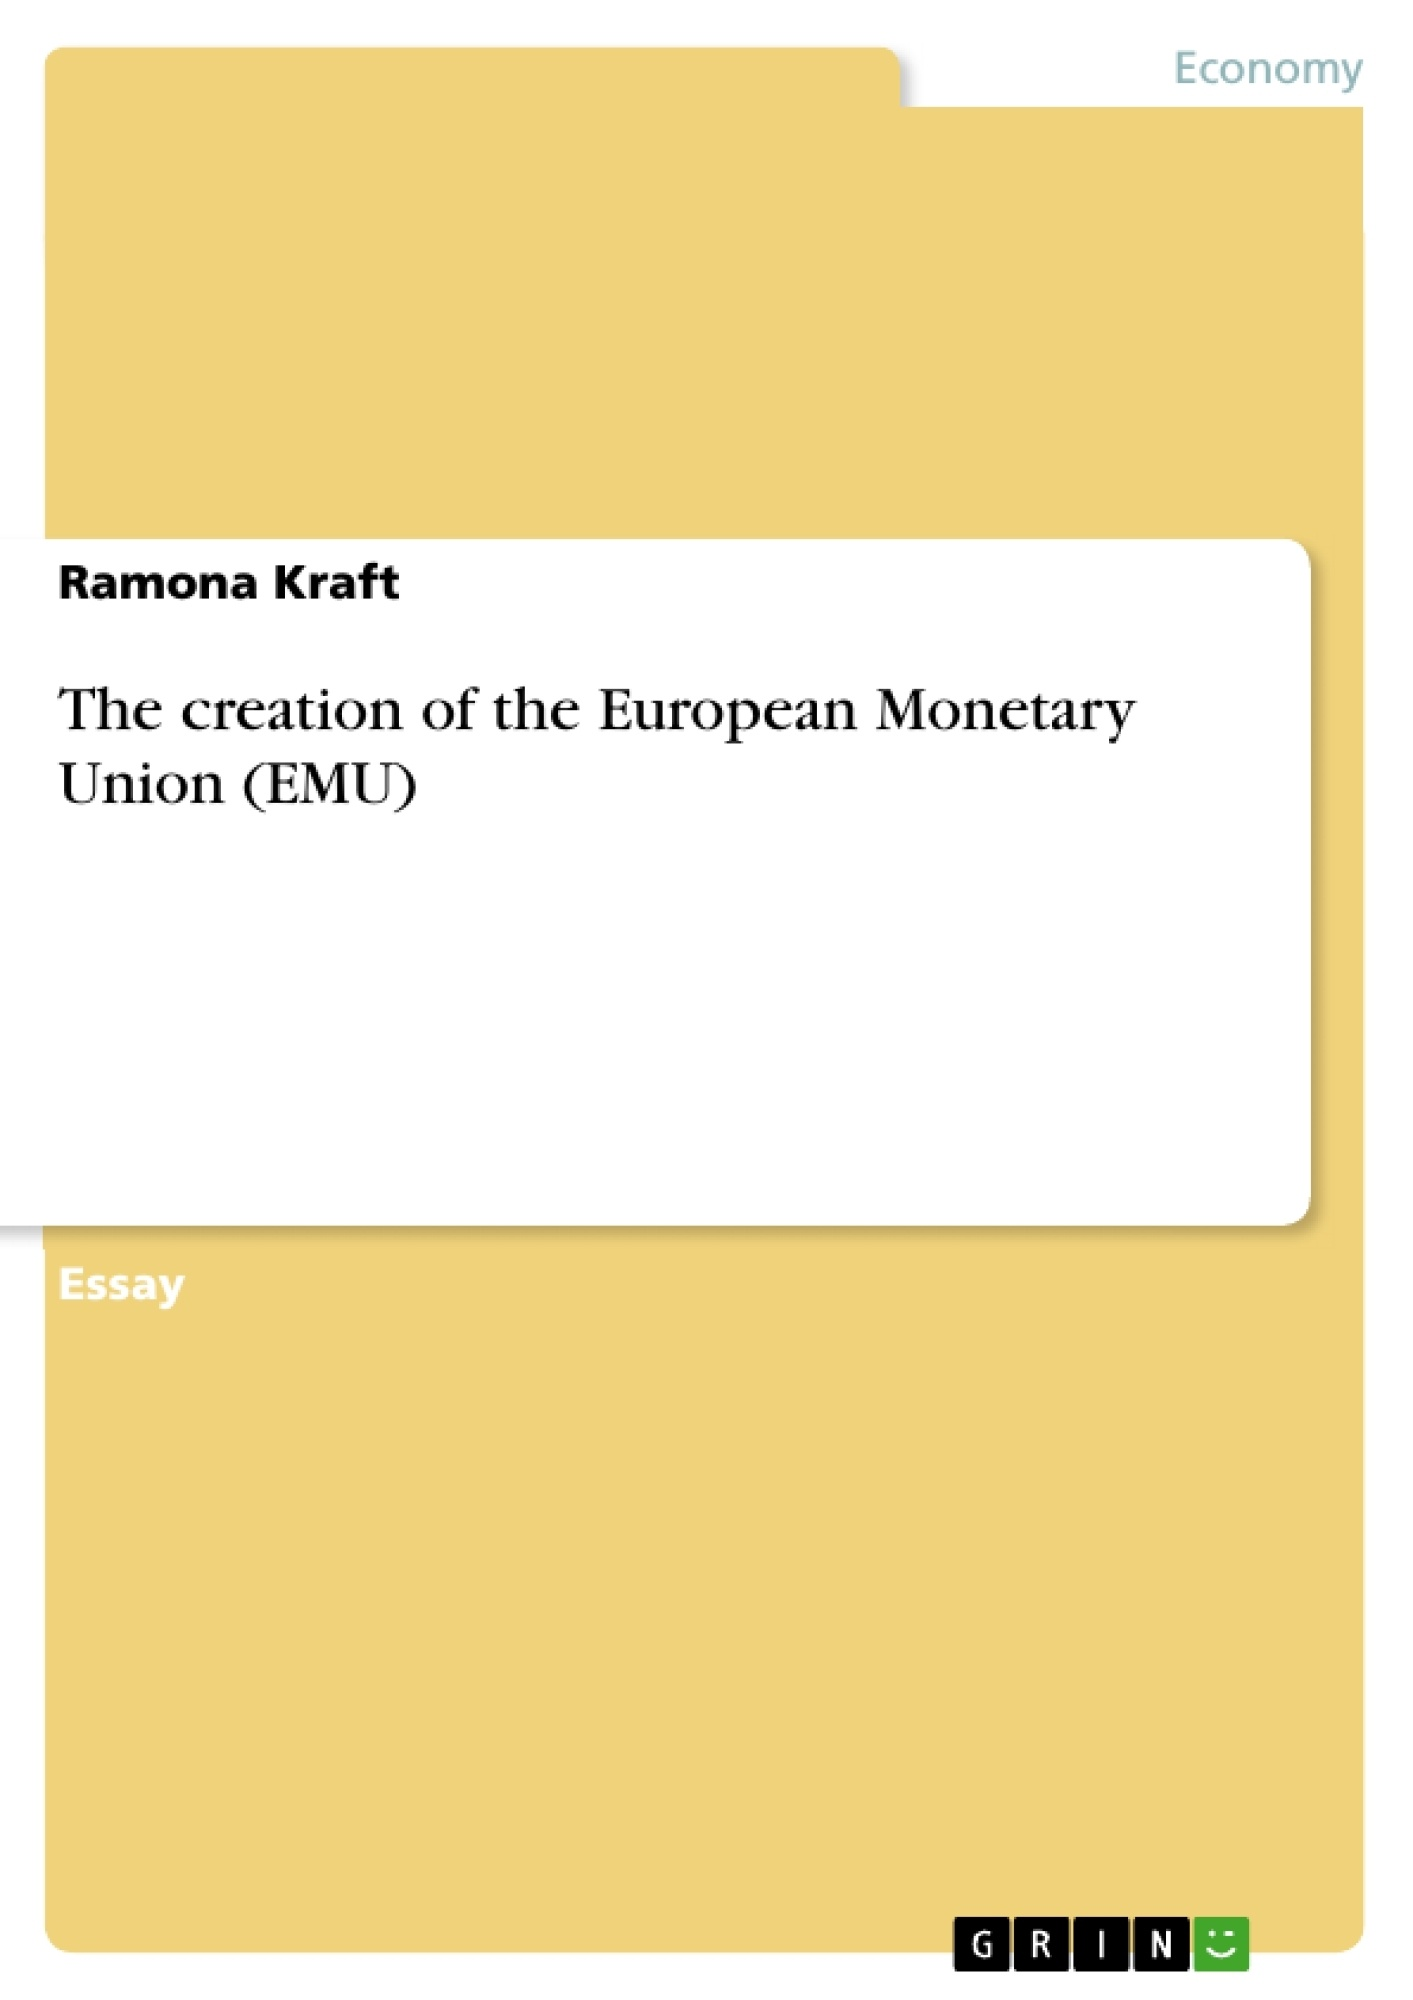 Title: The creation of the European Monetary Union (EMU)